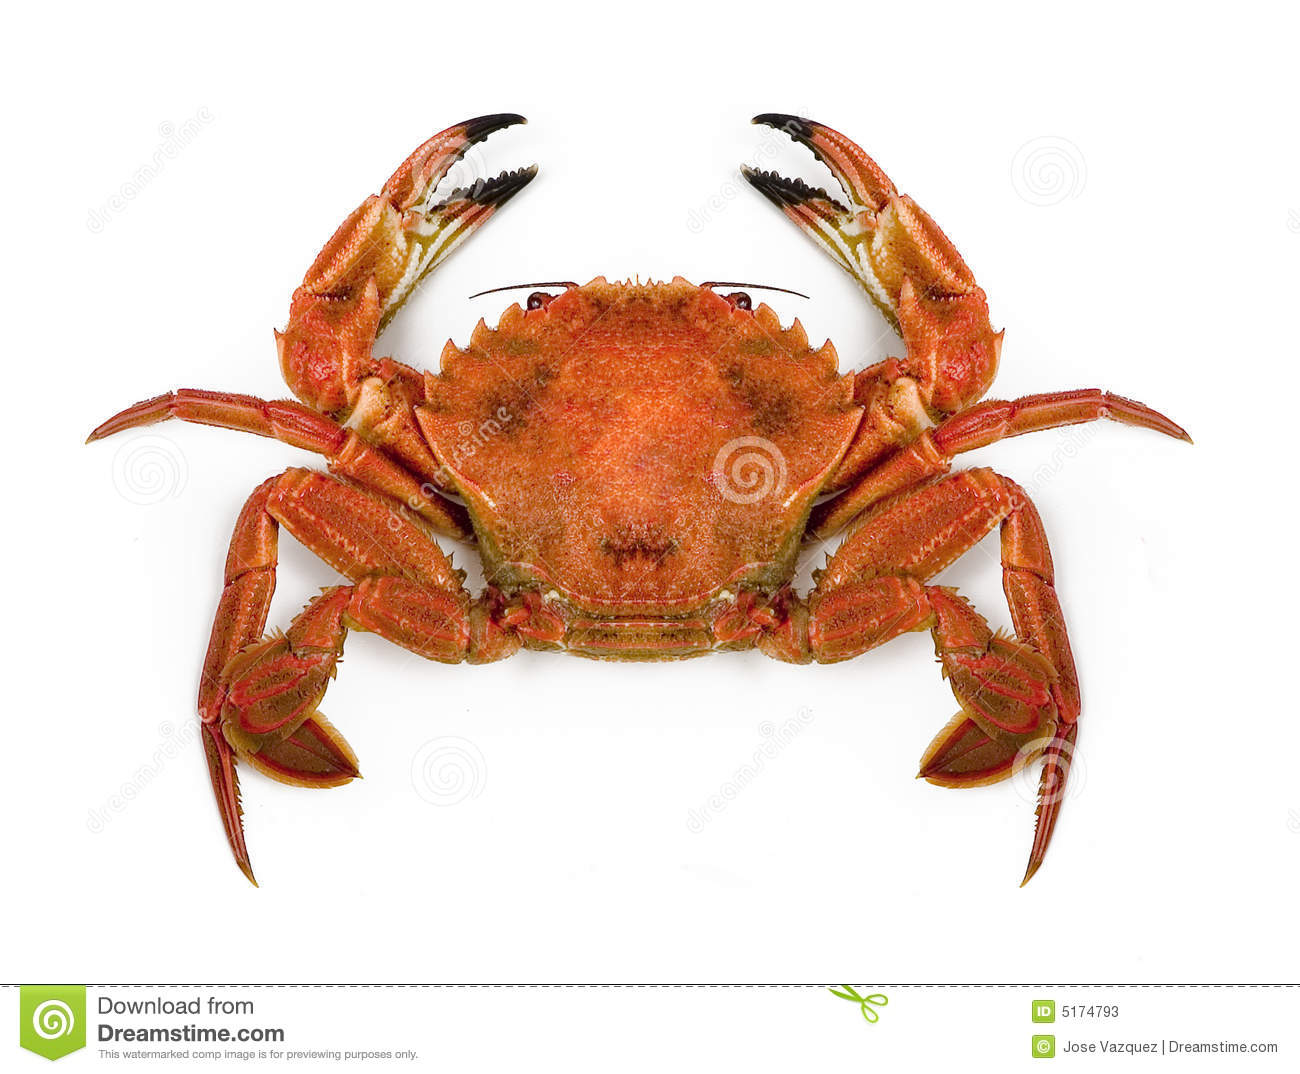 An closeup view of a large crab, isolated on white background.